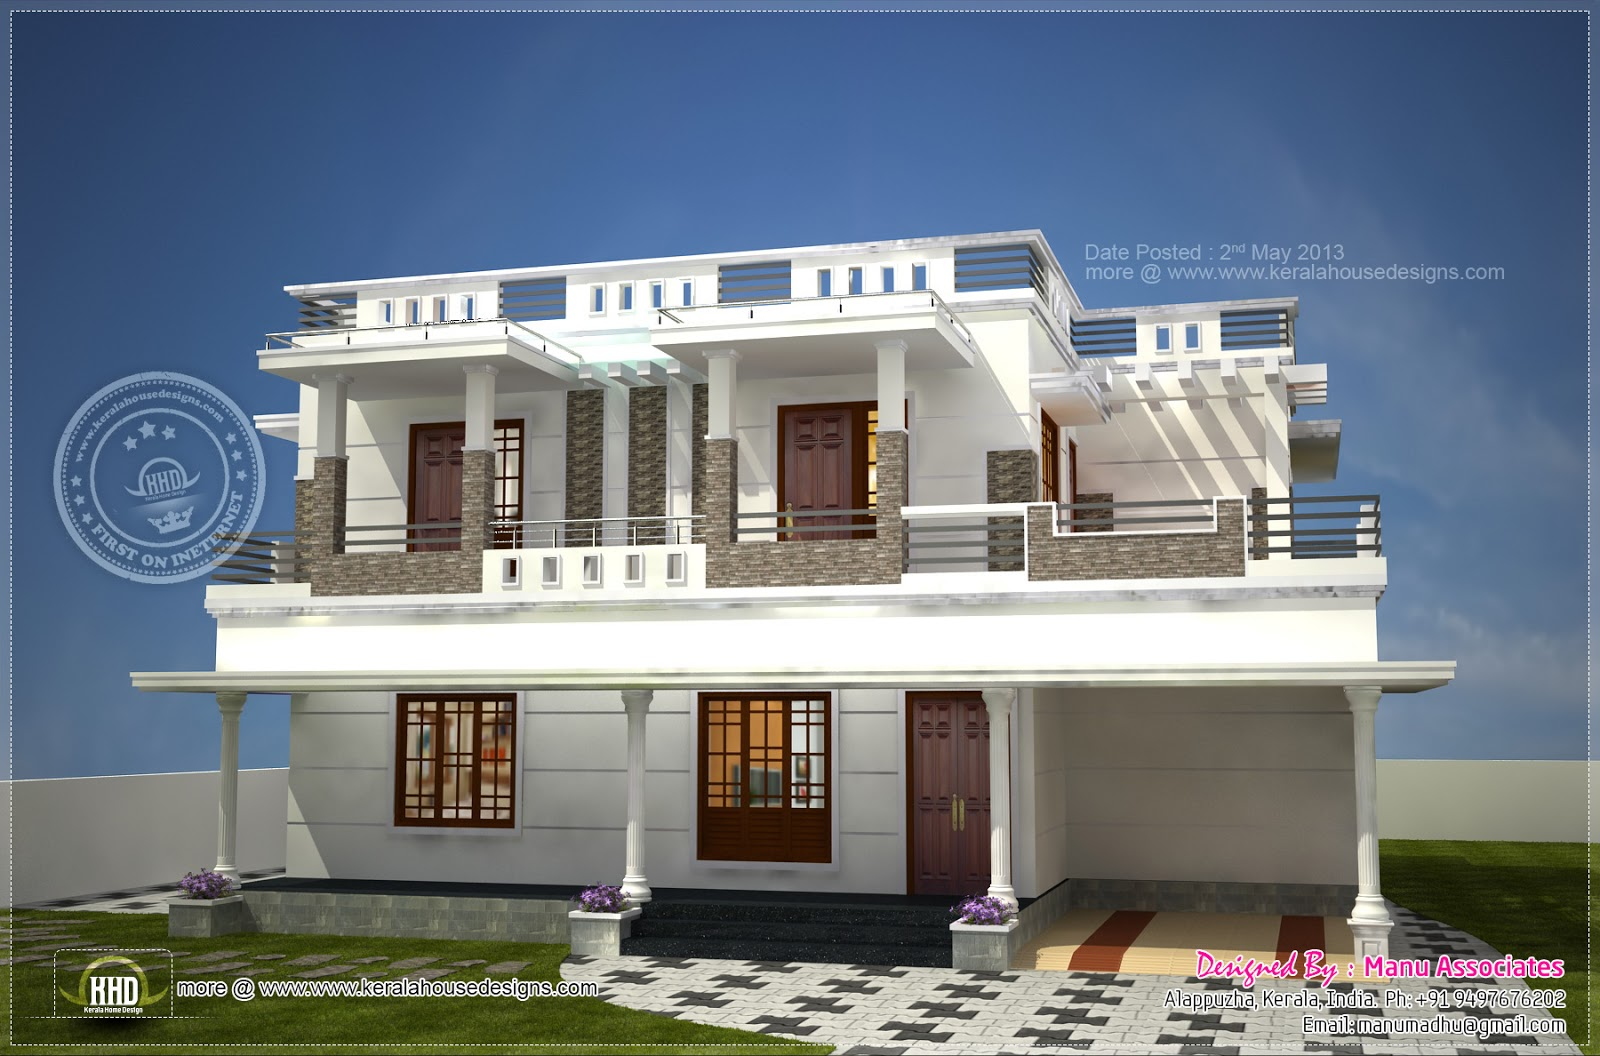 June 2014 Home Kerala Plans